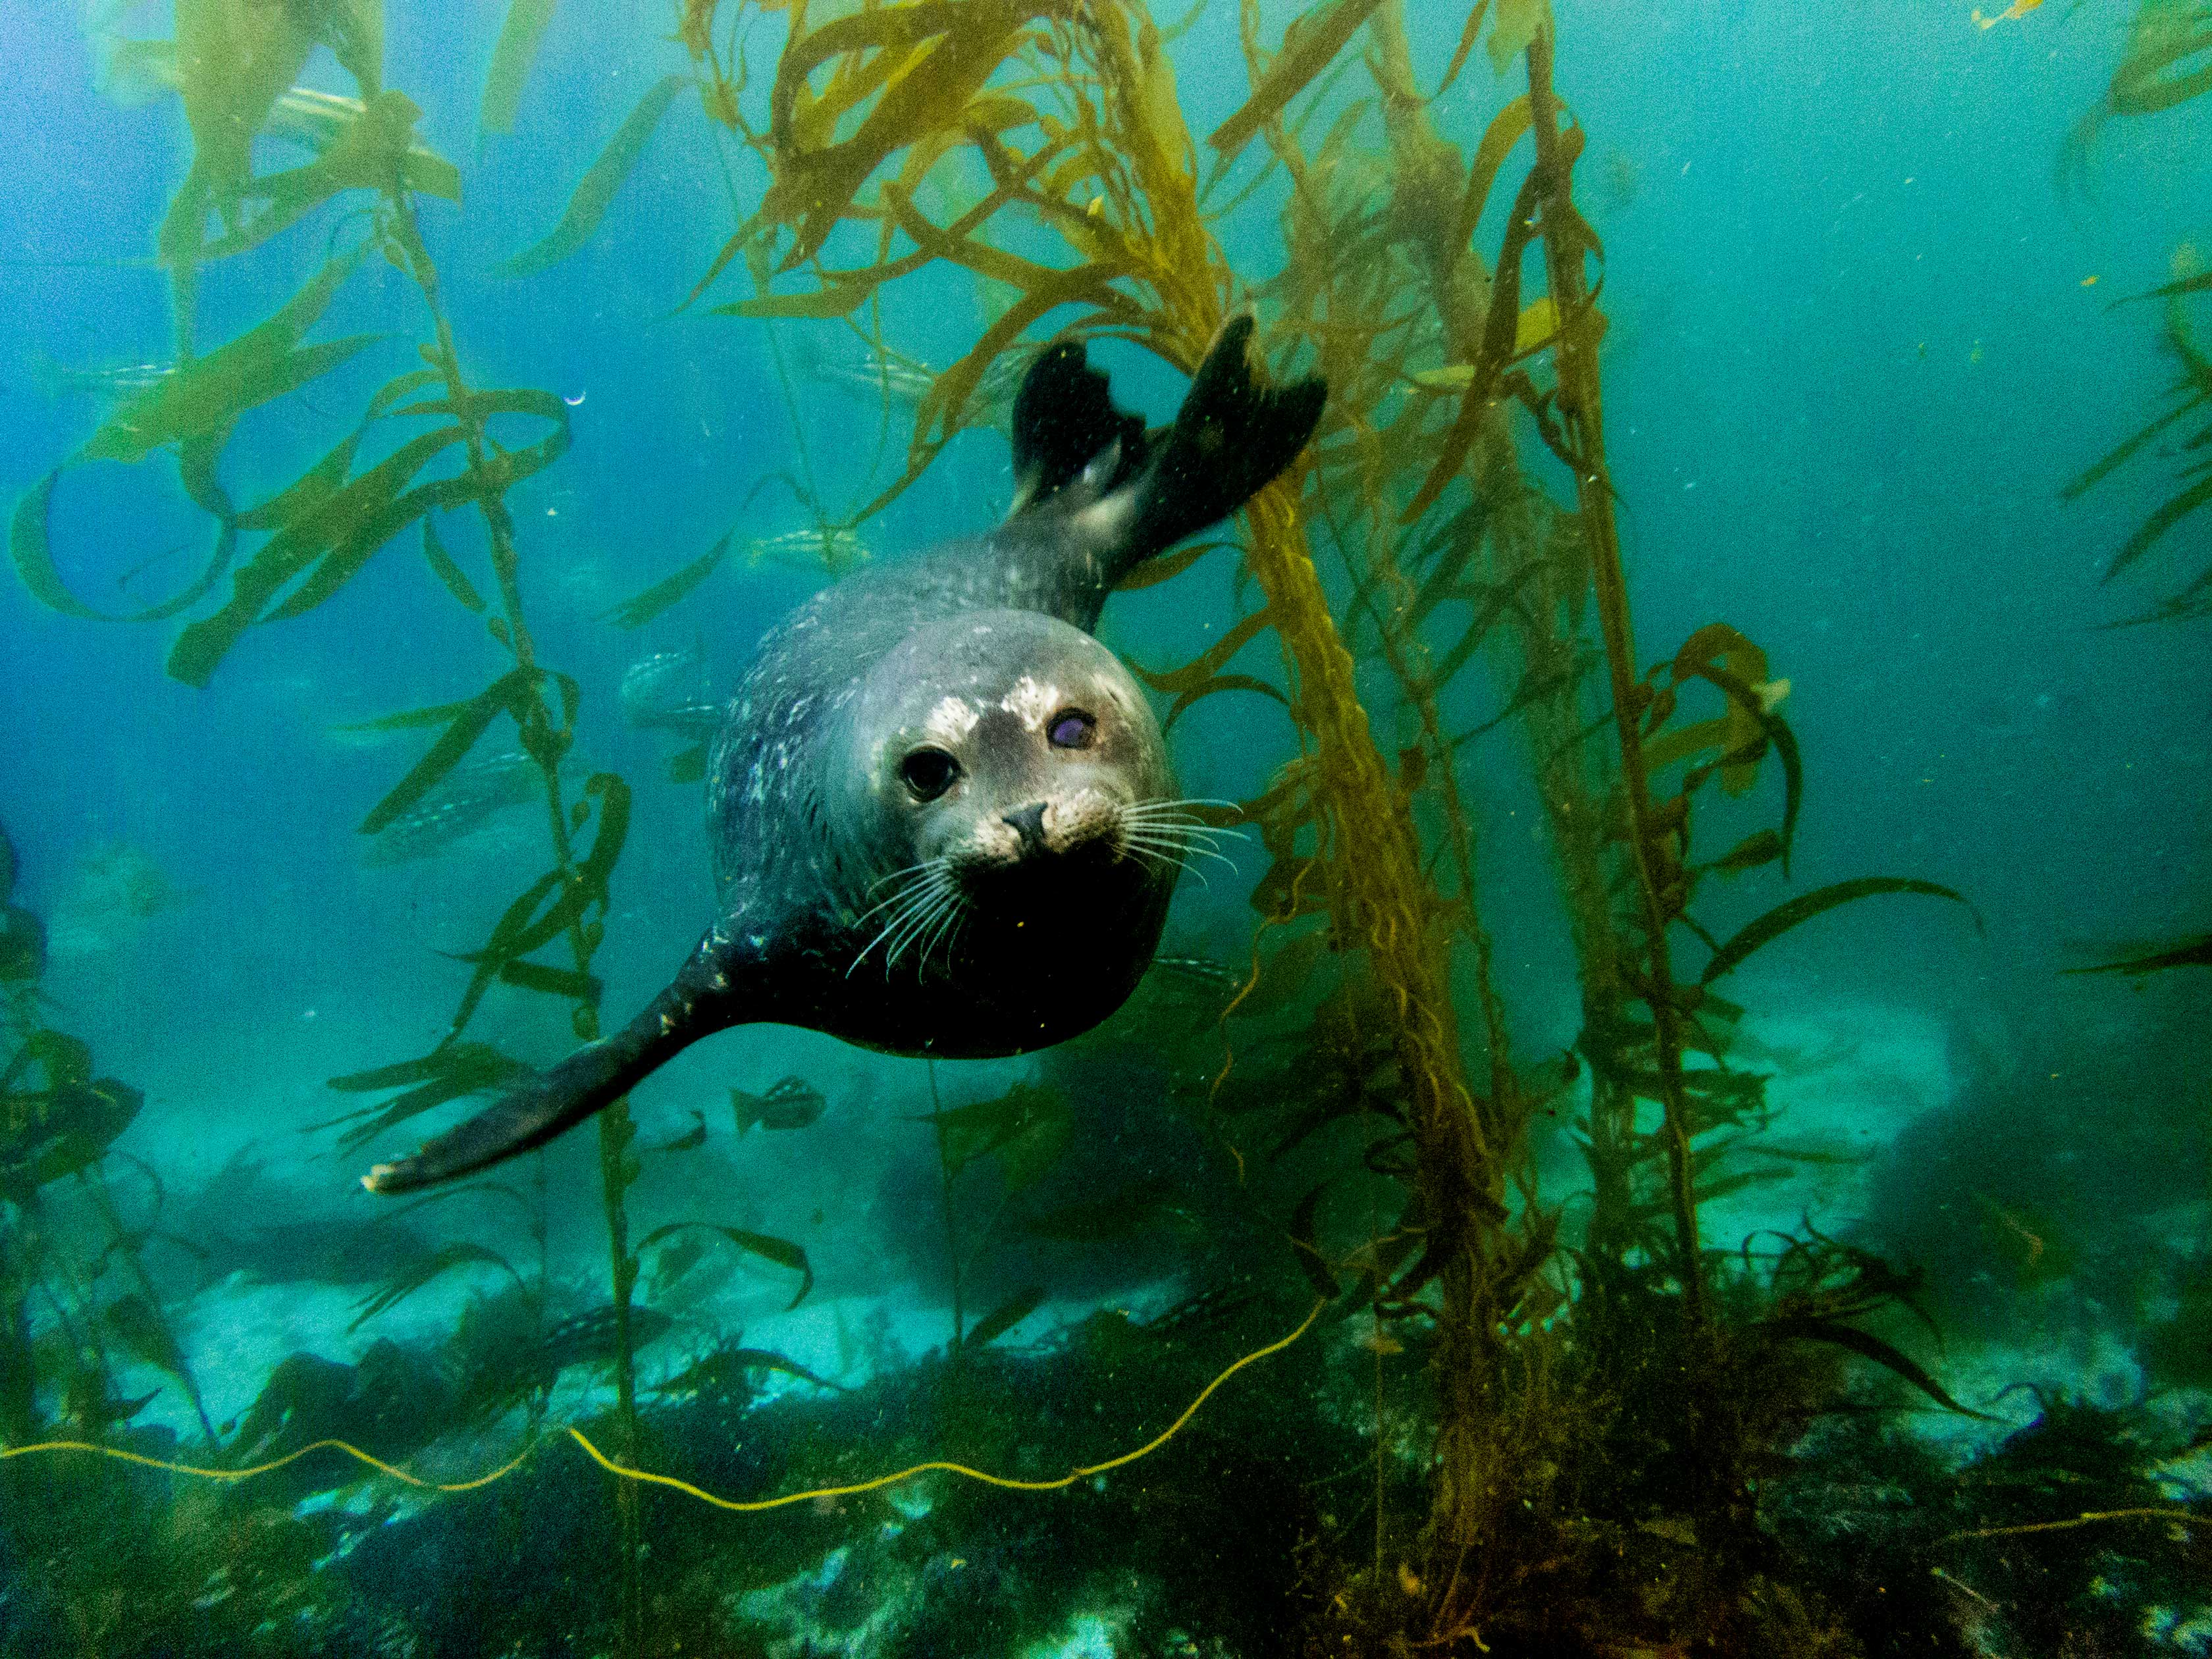 Seal looking directly at the camera while swimming in kelp forest